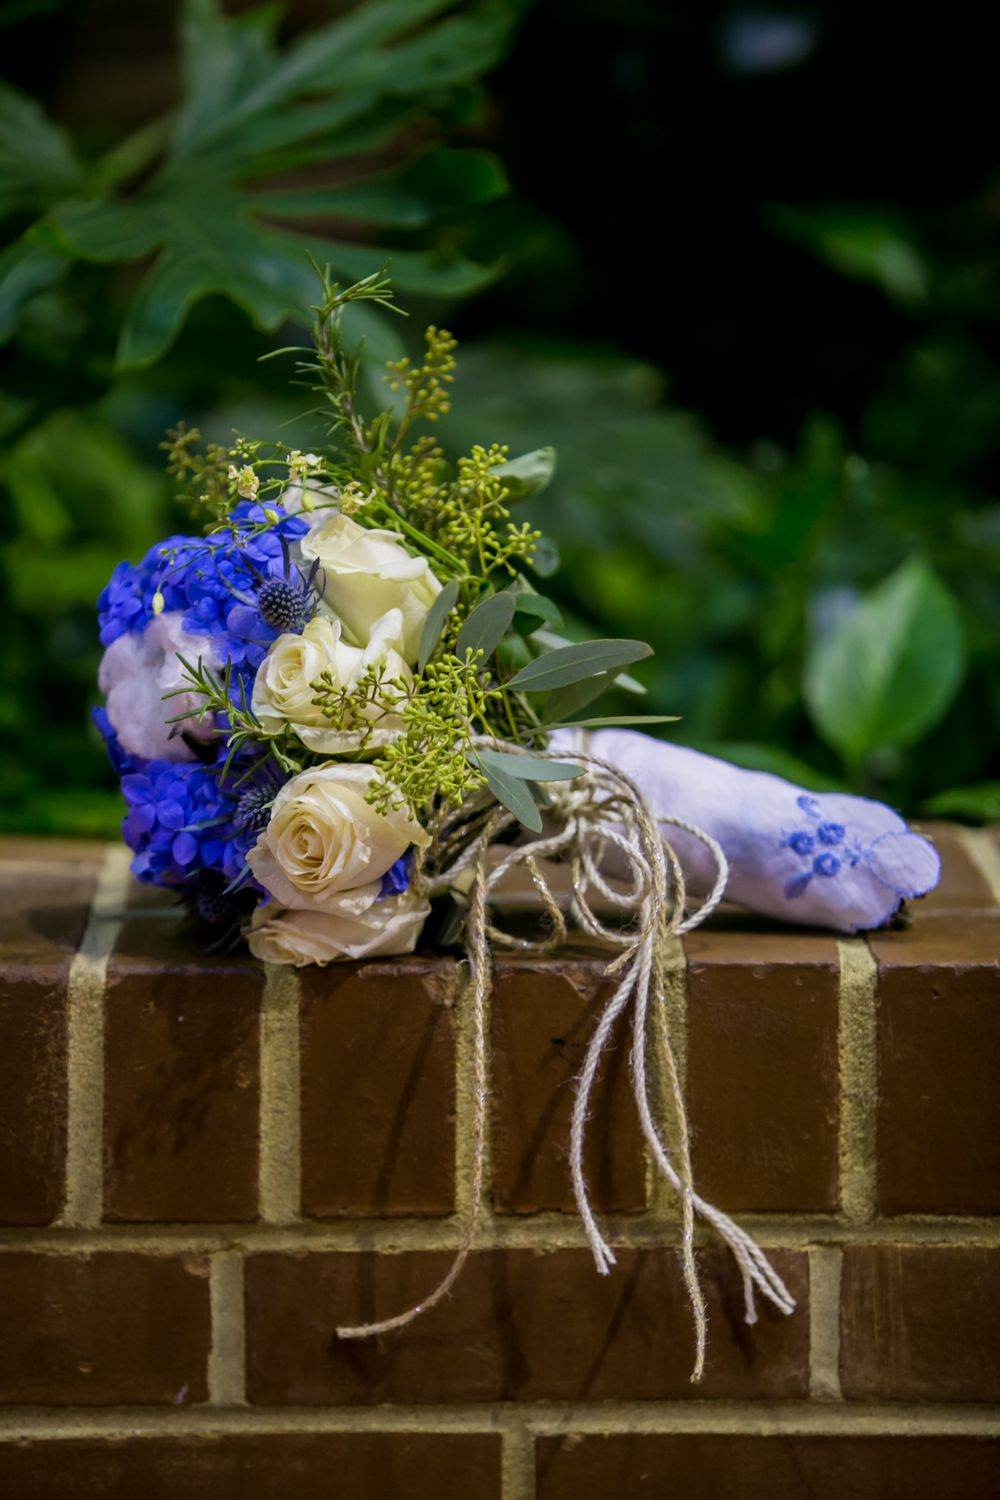 Brooke's bridal bouquet before her wedding at the South Carolina State Museum in Columbia, SC